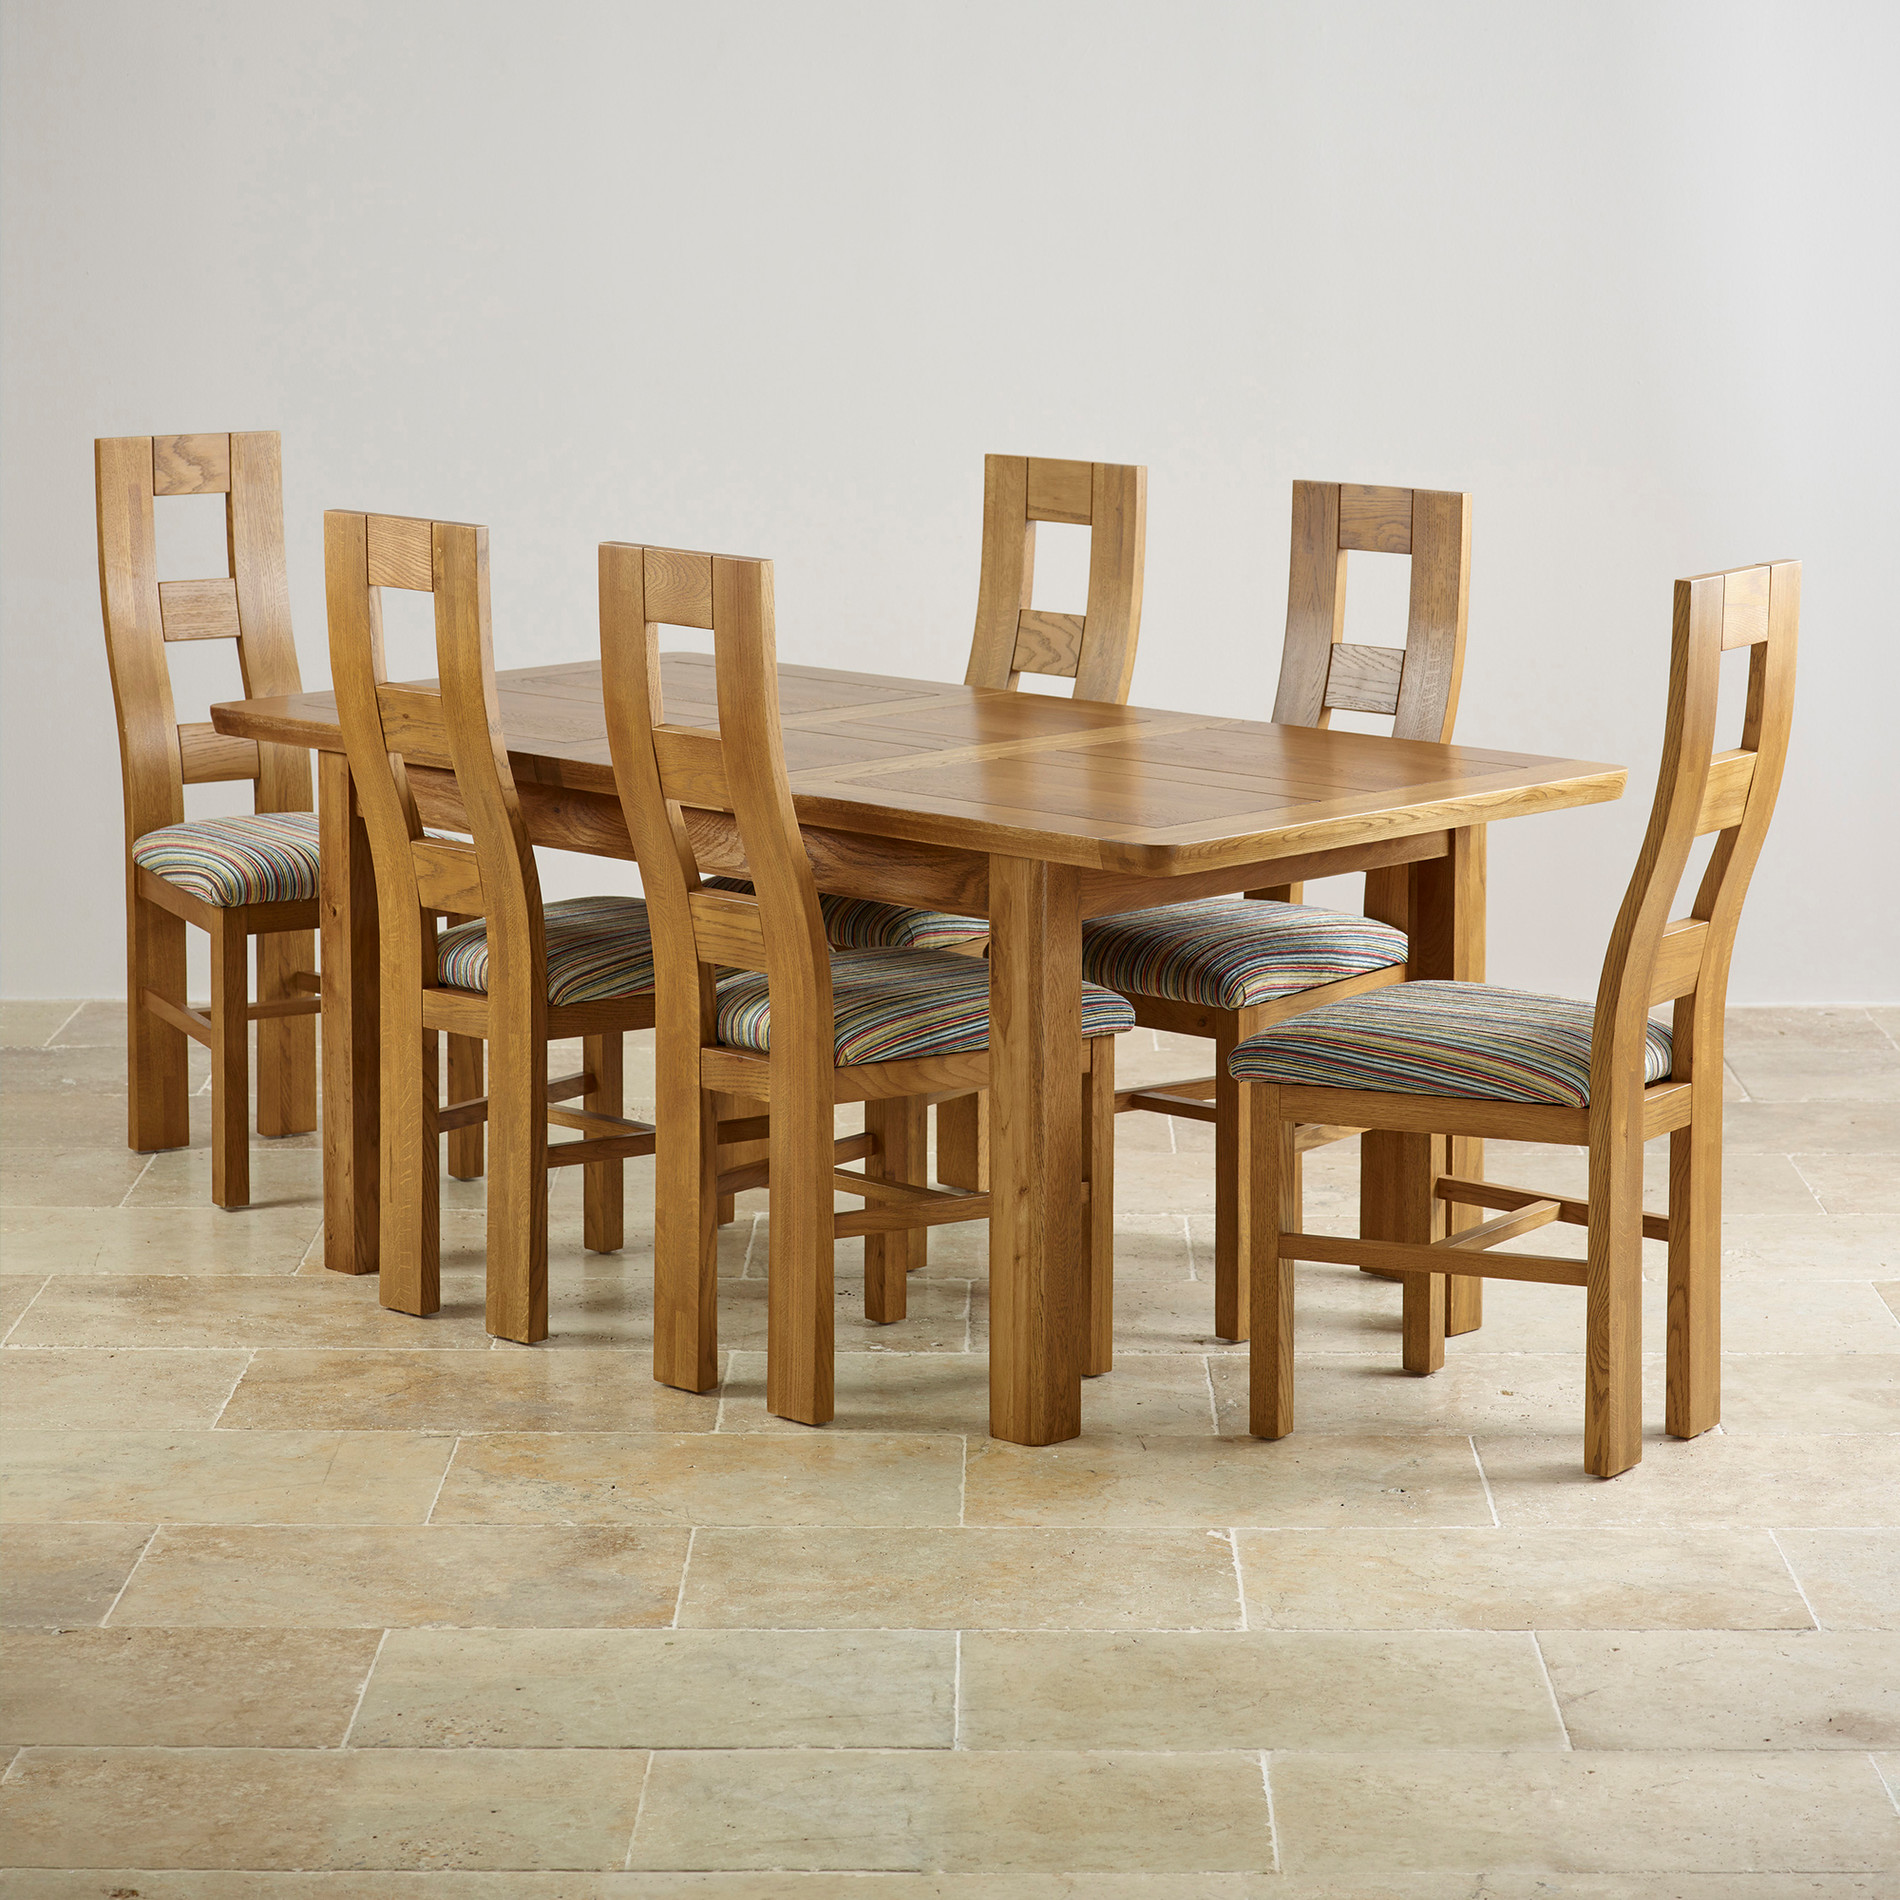 orrick extending dining set in rustic oak table 6 beige chairs - Solid Oak Extending Dining Table And 6 Chairs